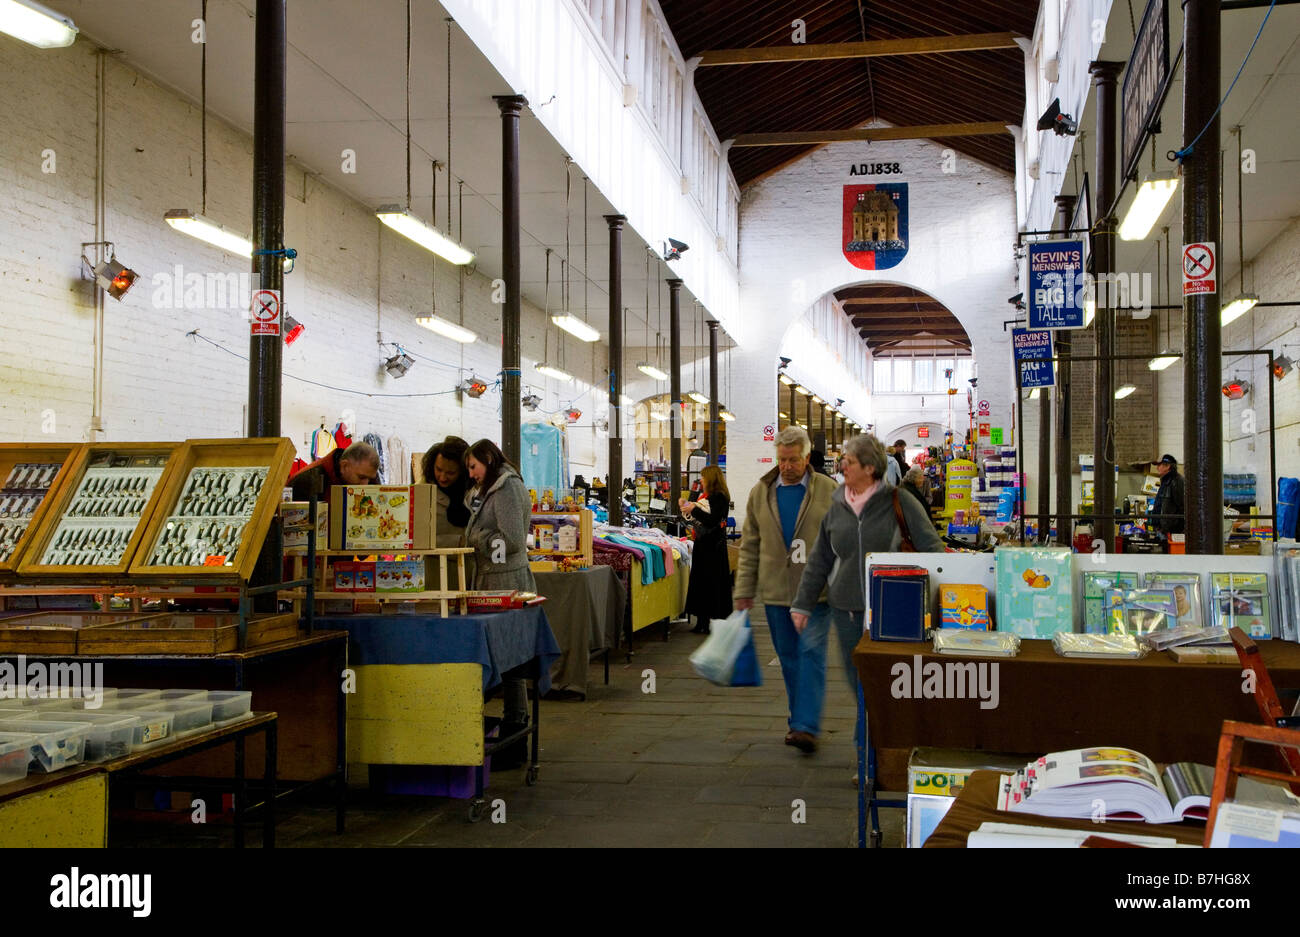 The Shambles indoor market in the typical English market town of Devizes Wiltshire England UK - Stock Image